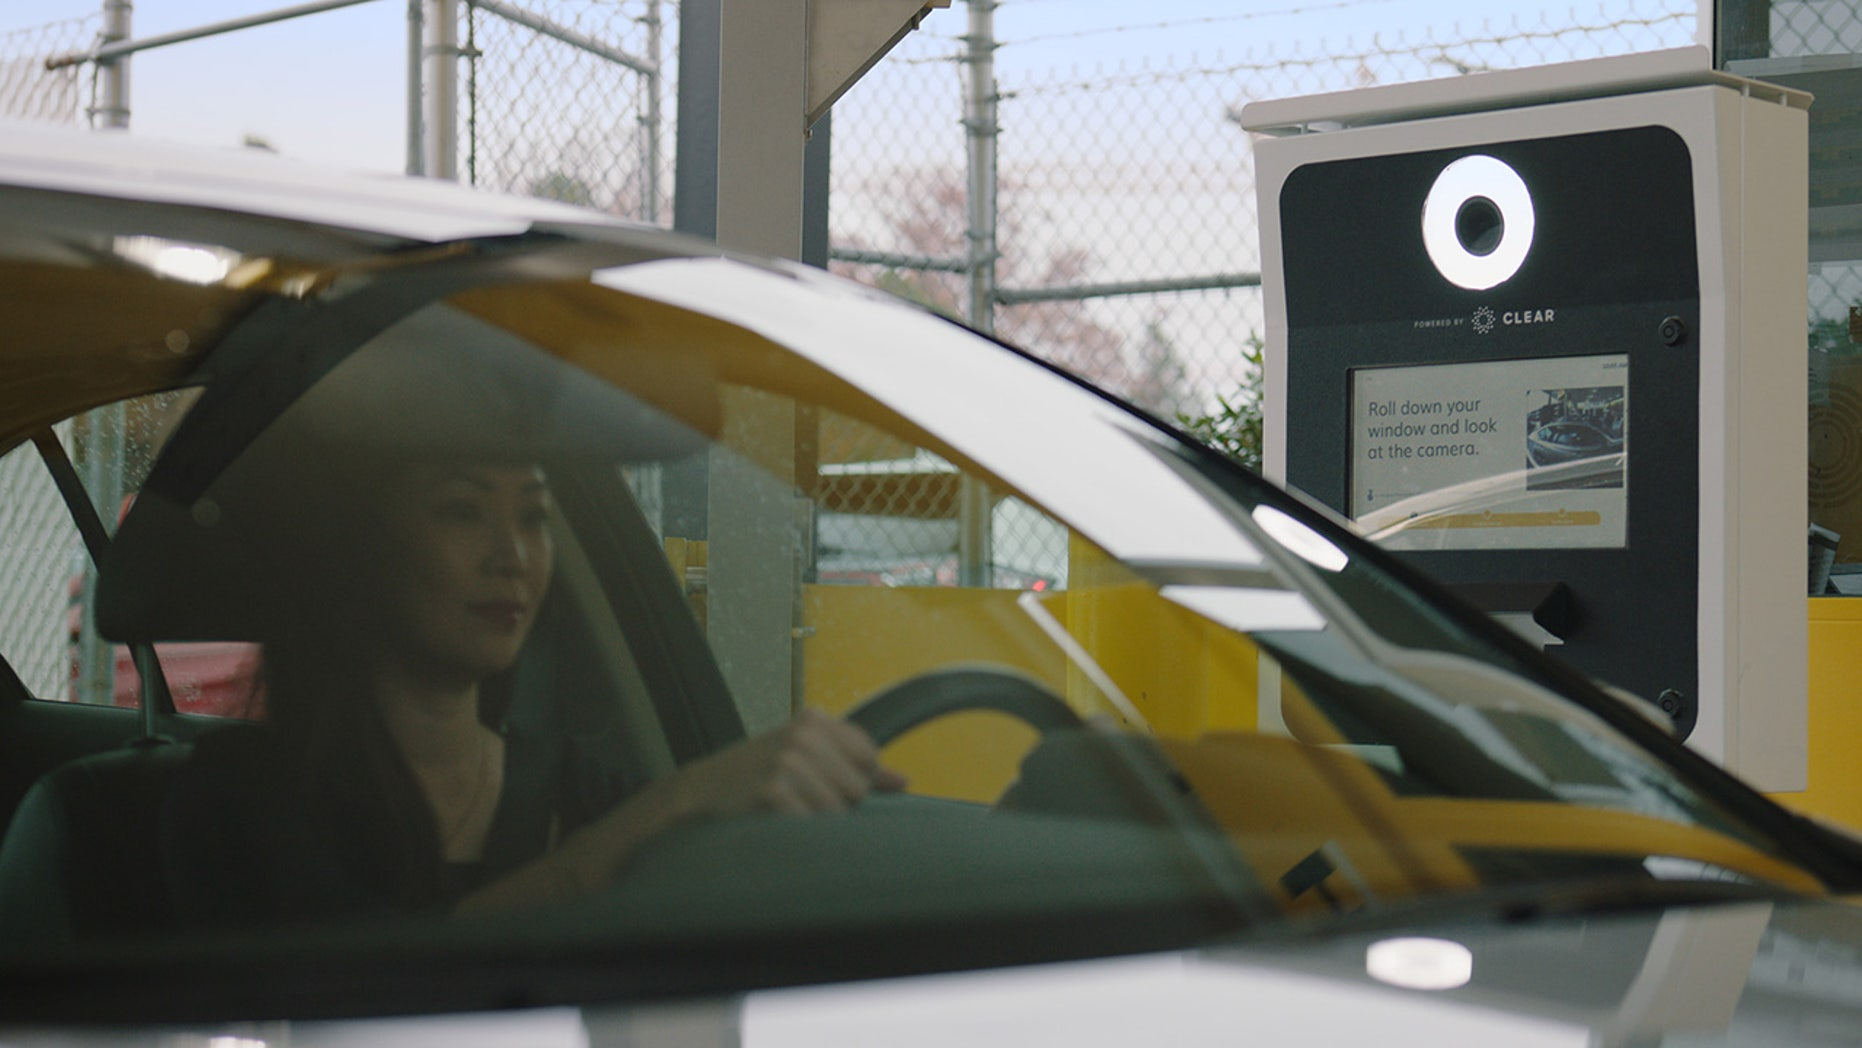 Hertz's New Facial Recognition Technology Lets You Rent A Car With Your Face